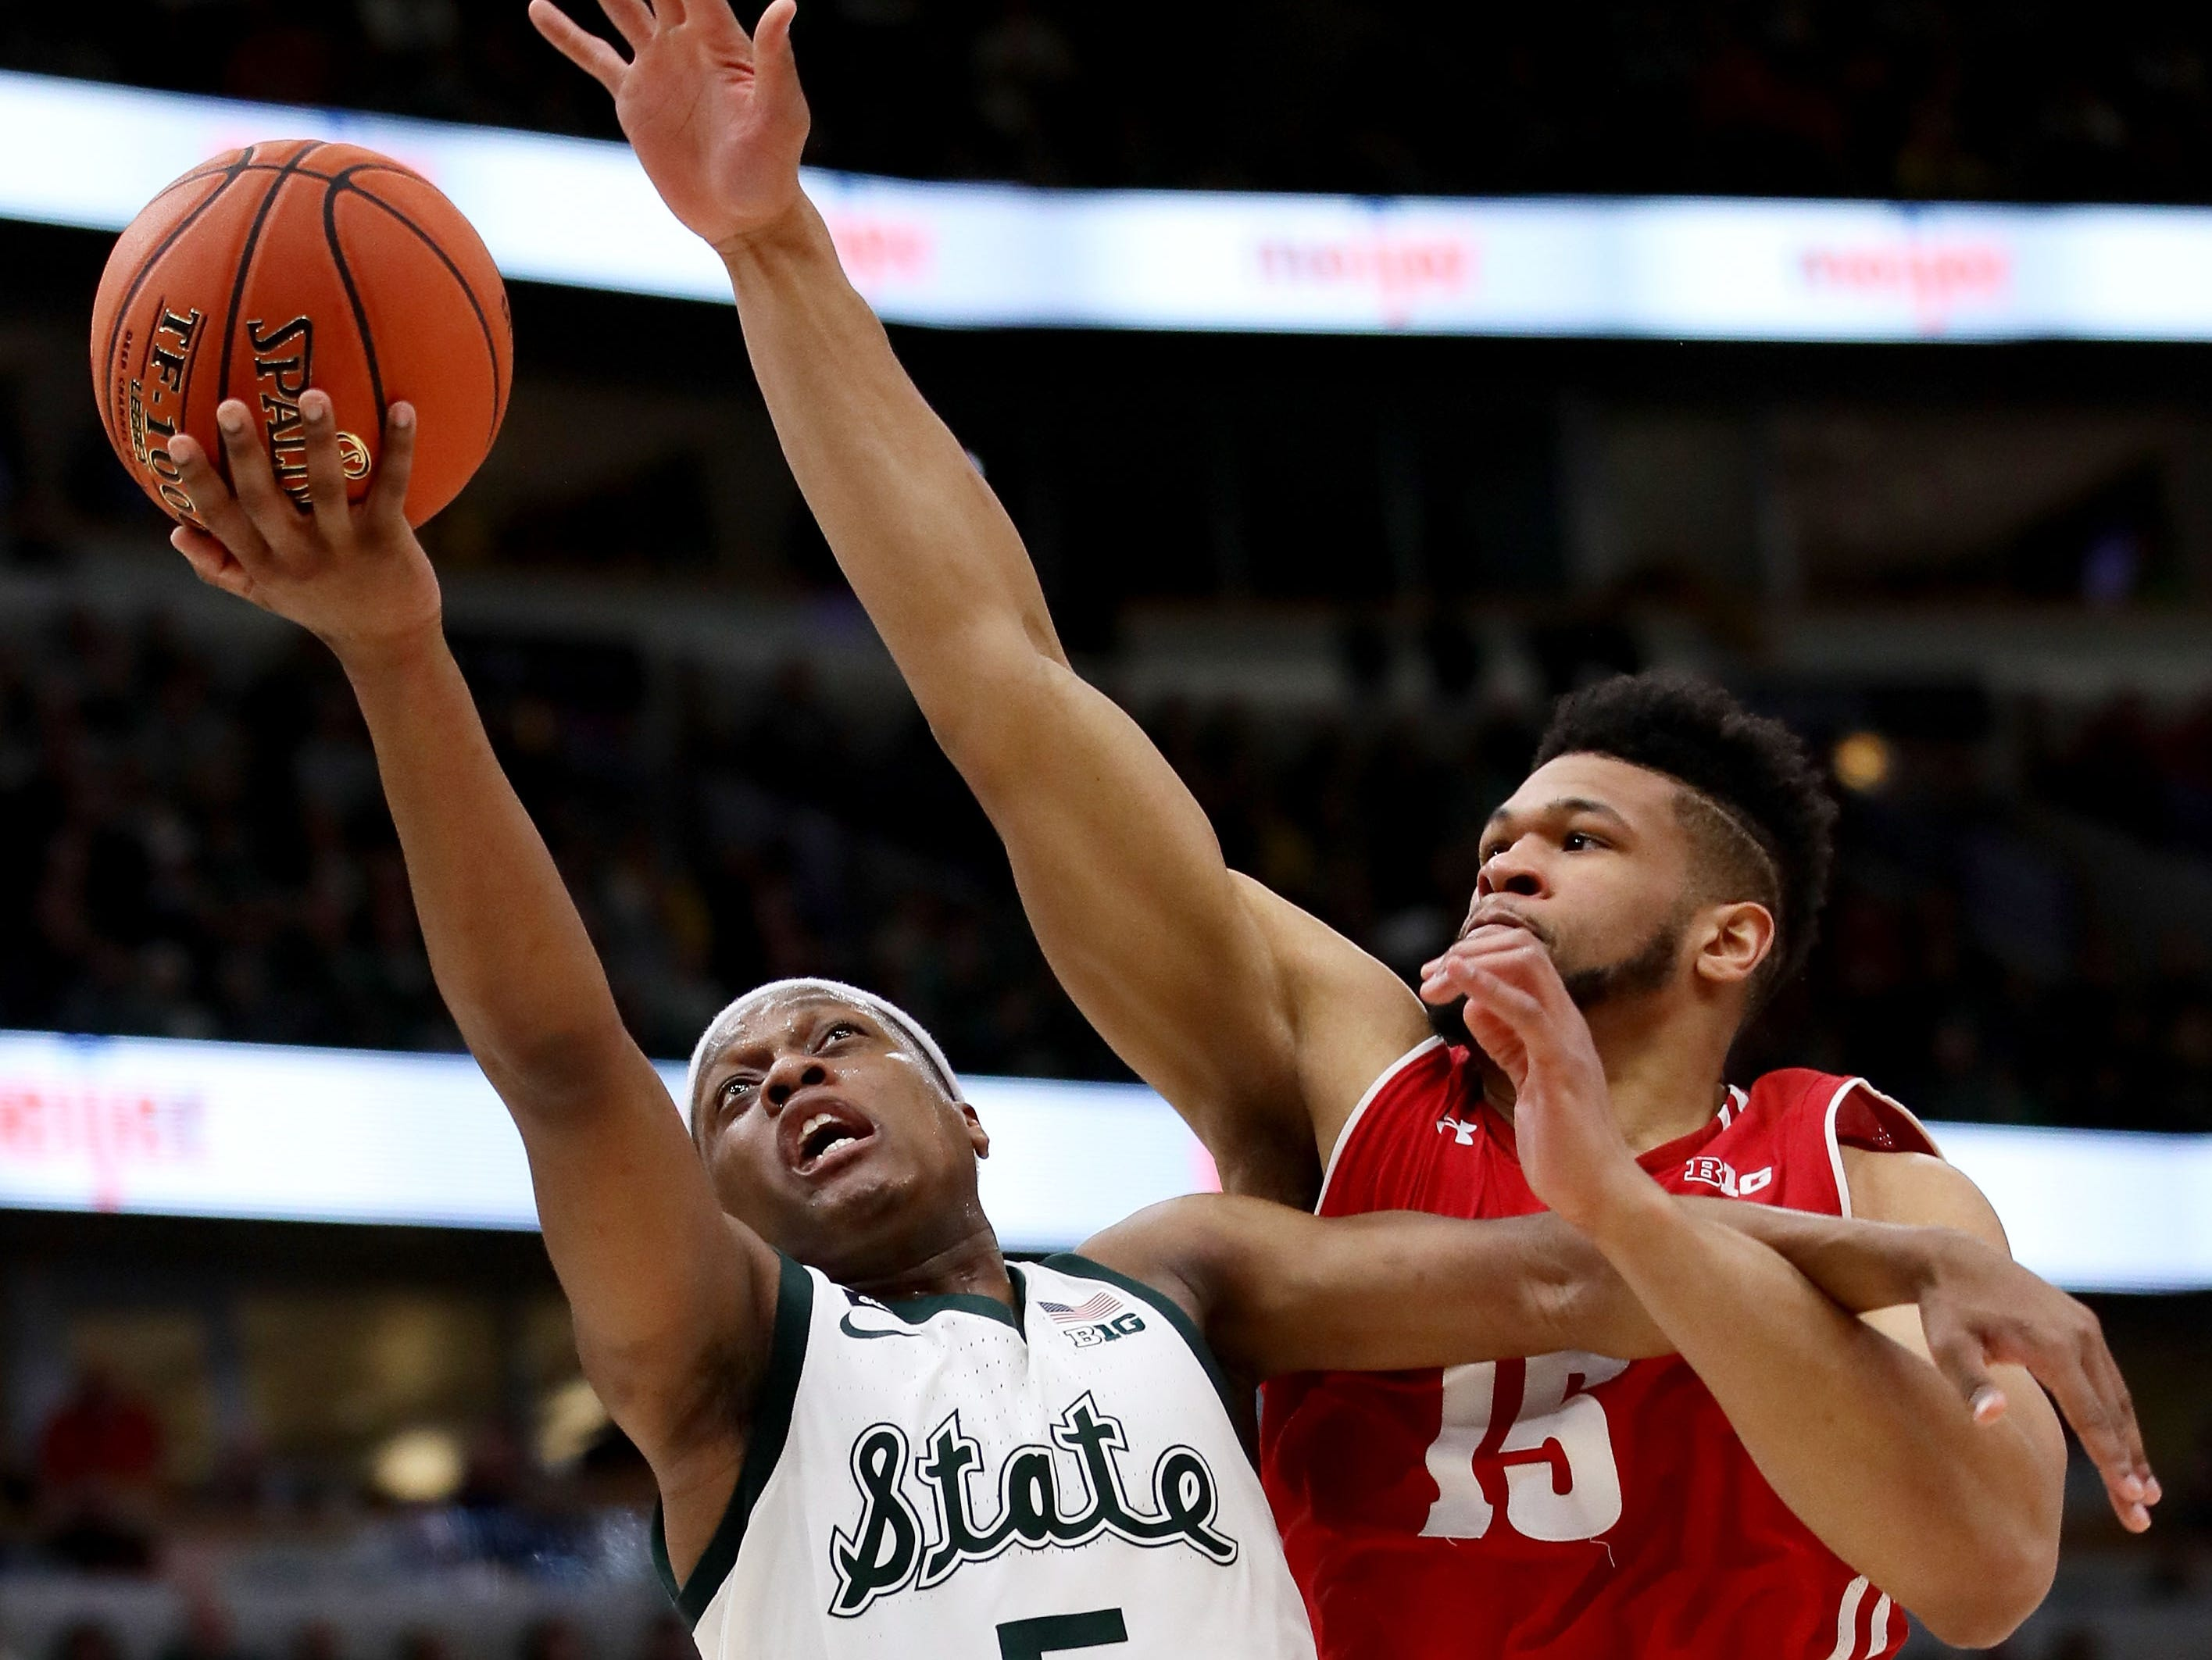 Cassius Winston #5 of the Michigan State Spartans attempts a shot while being guarded by Charles Thomas IV #15 of the Wisconsin Badgers in the second half during the semifinals of the Big Ten Basketball Tournament at the United Center on March 16, 2019 in Chicago, Illinois.